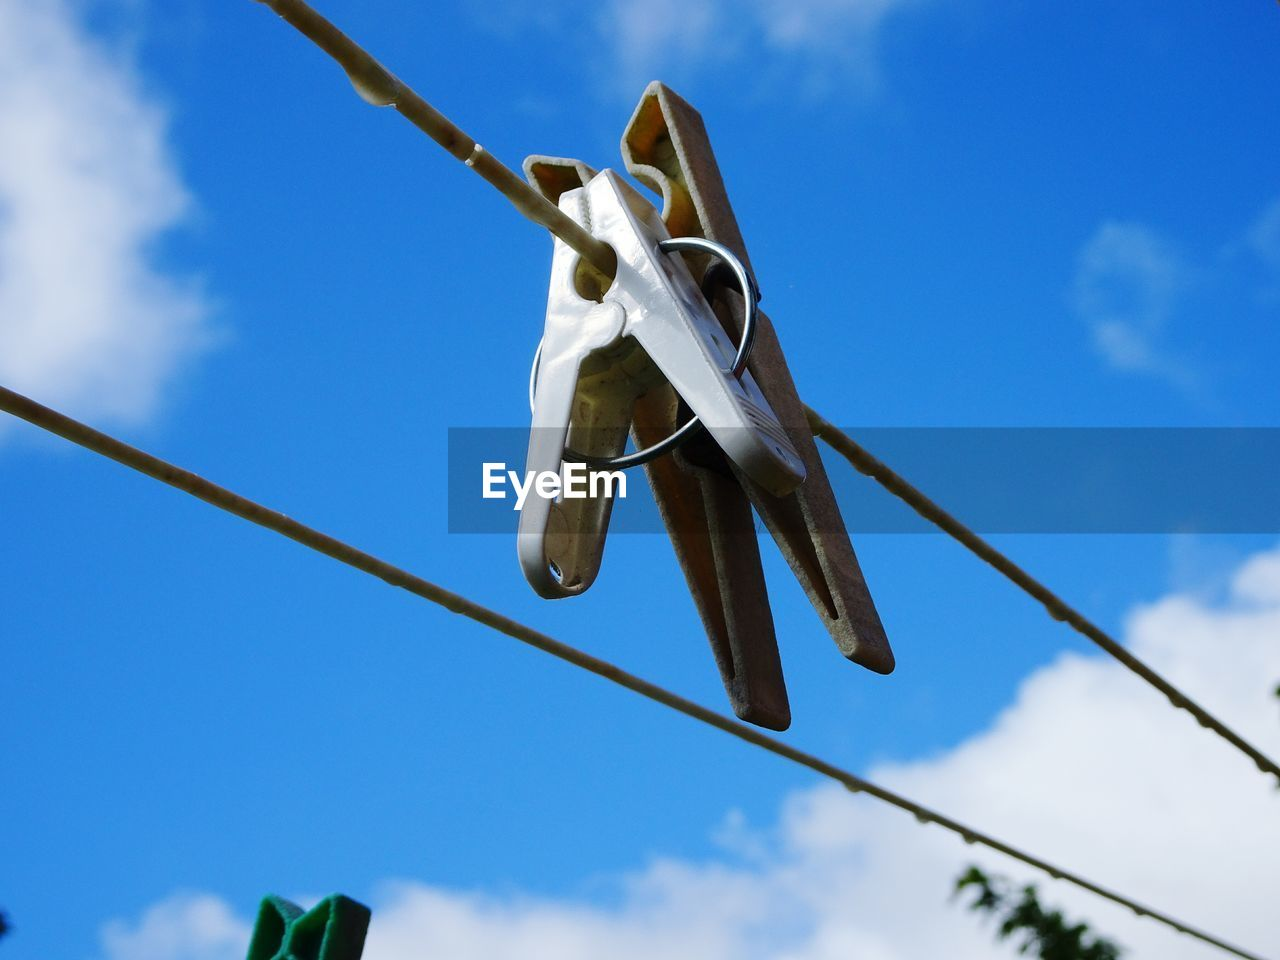 low angle view, sky, clothespin, clothesline, no people, hanging, nature, blue, day, rope, focus on foreground, cloud - sky, laundry, clothing, sunlight, outdoors, close-up, plant, shoe, metal, directly below